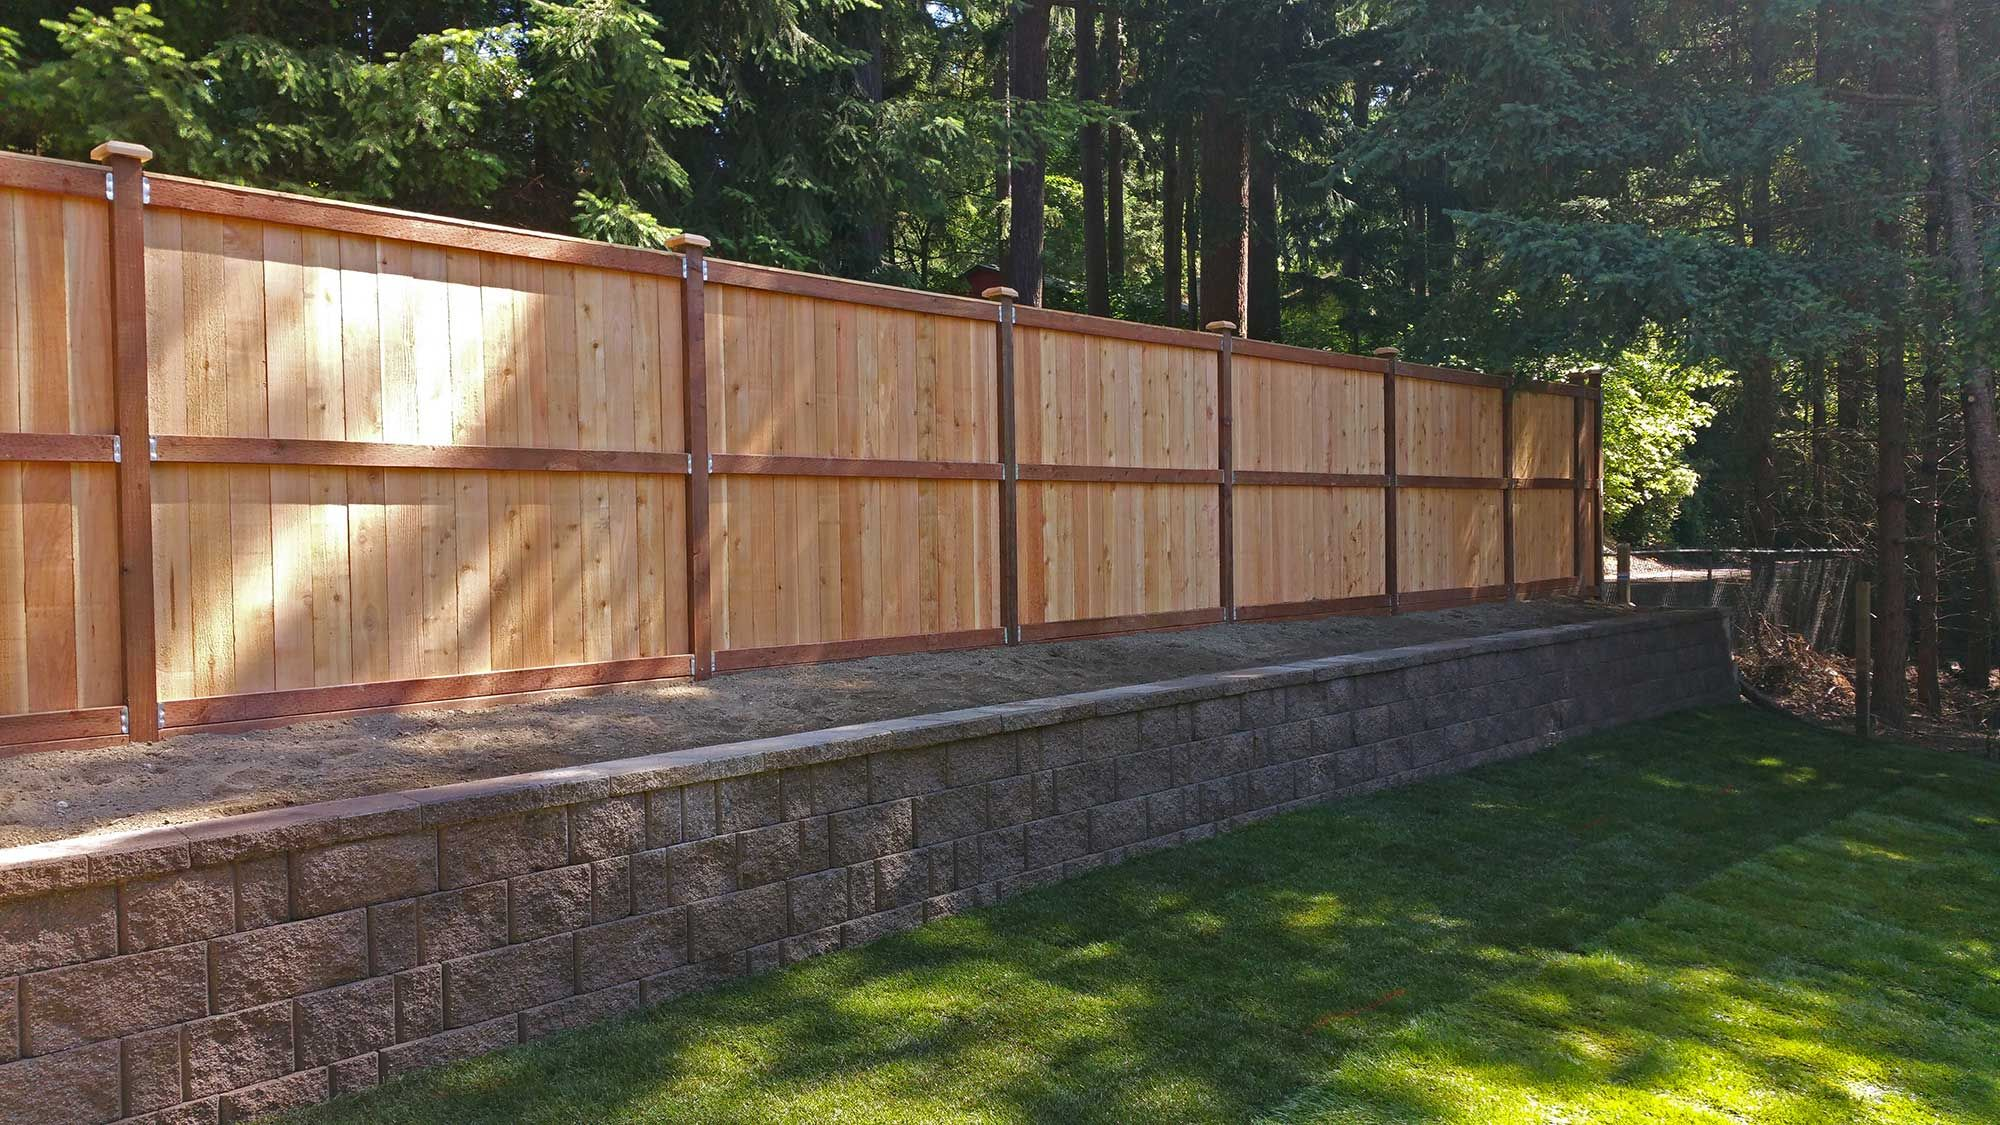 Fencing Or Retaining Walls Which One Is Better In 2020 Fence Design Retaining Wall Fence Backyard